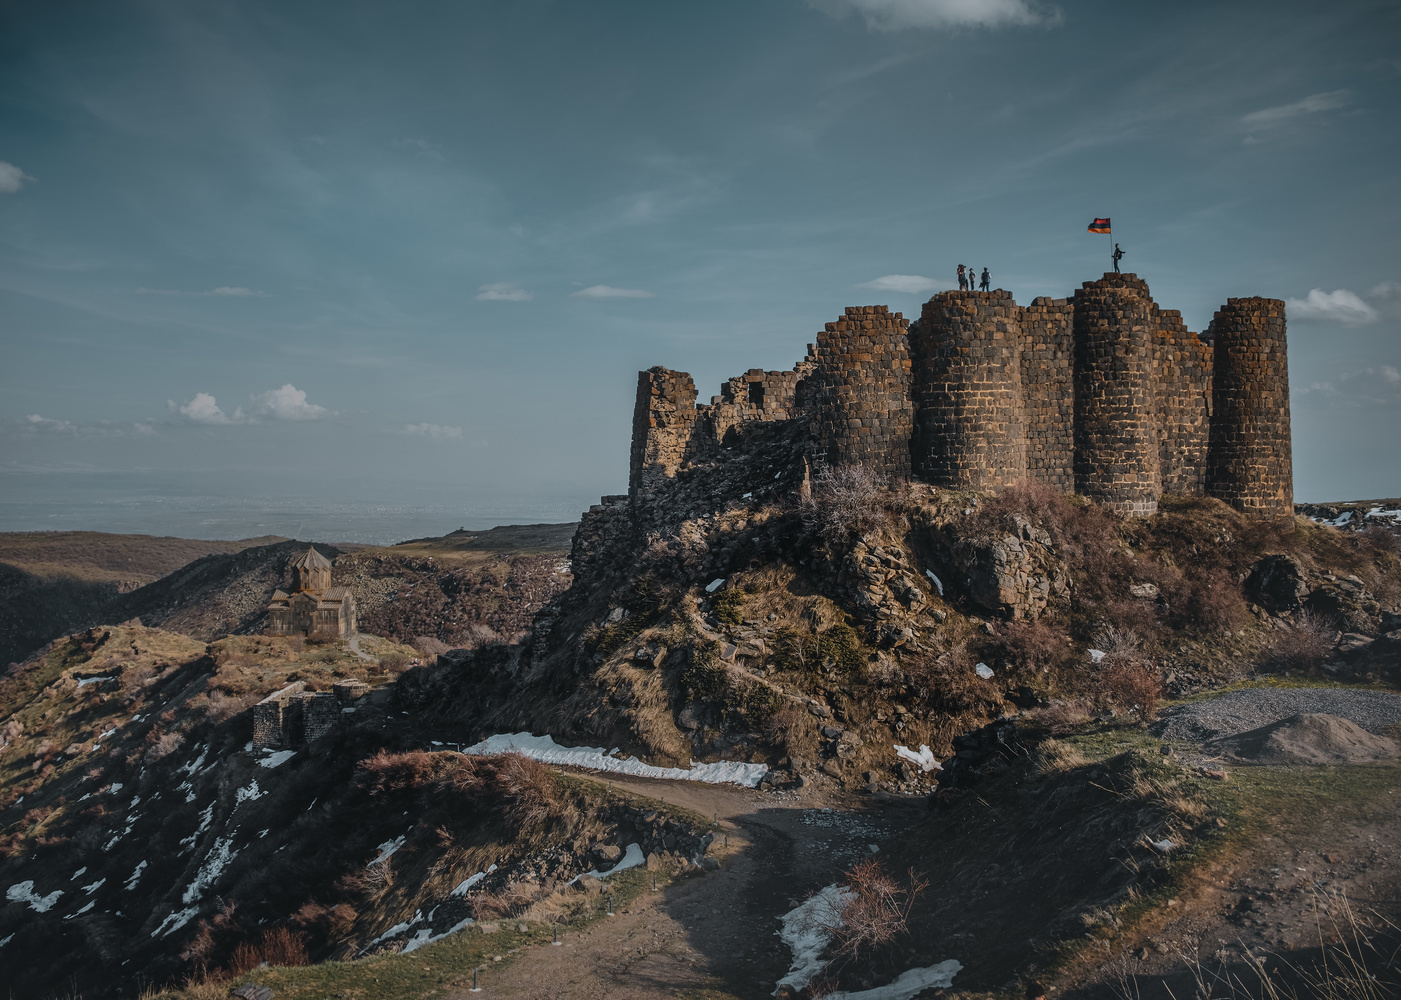 Amberd Fortress by andrew audley